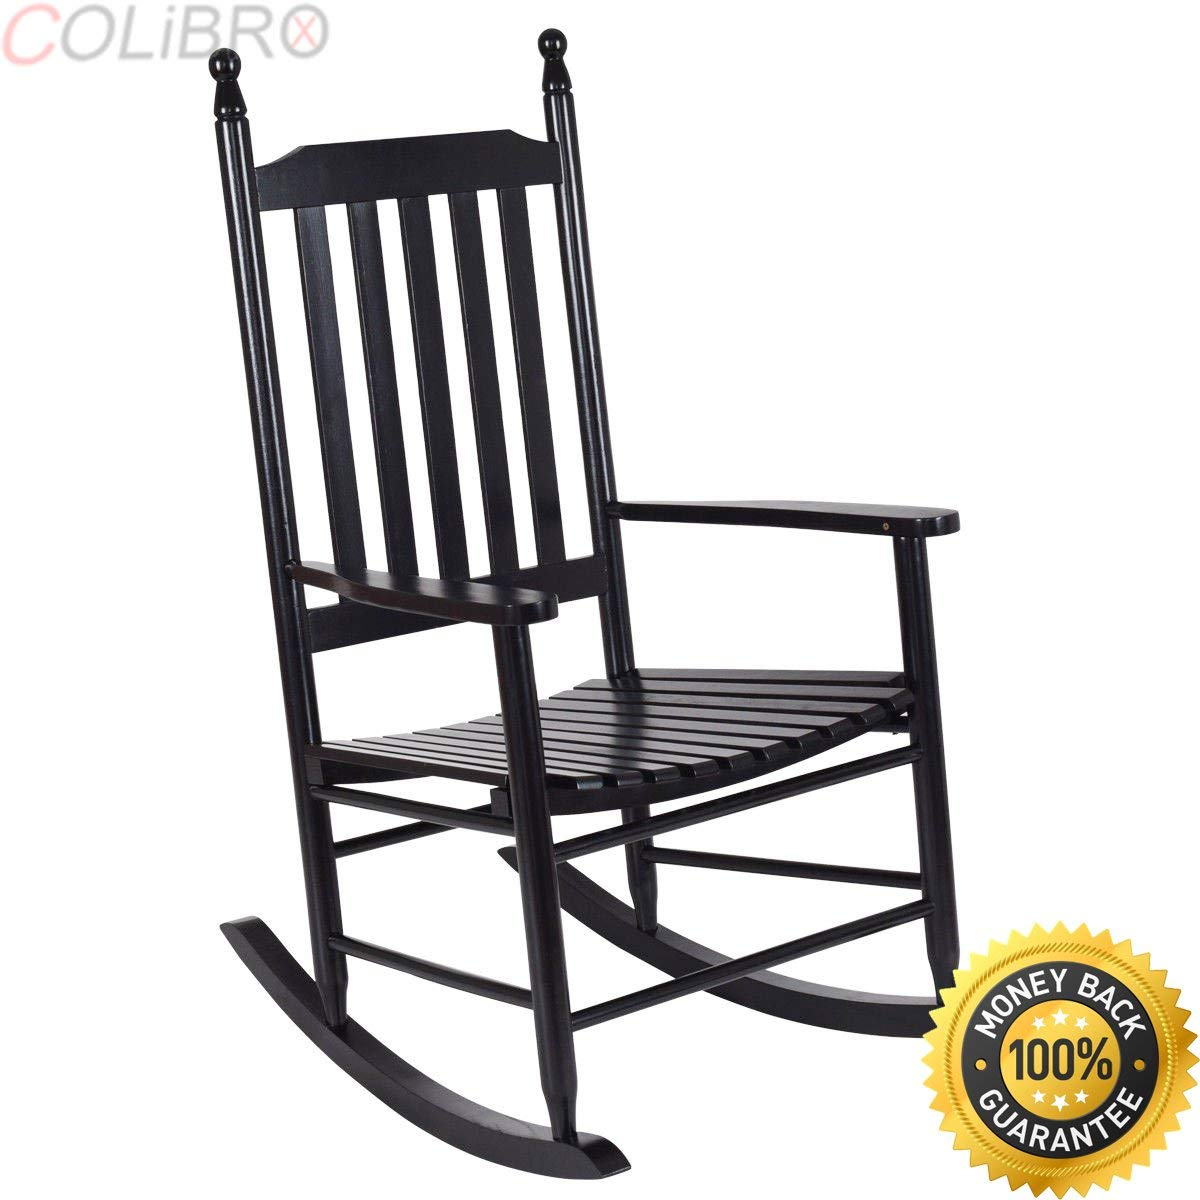 Remarkable Cheap Wooden Chairs Ikea Find Wooden Chairs Ikea Deals On Ibusinesslaw Wood Chair Design Ideas Ibusinesslaworg